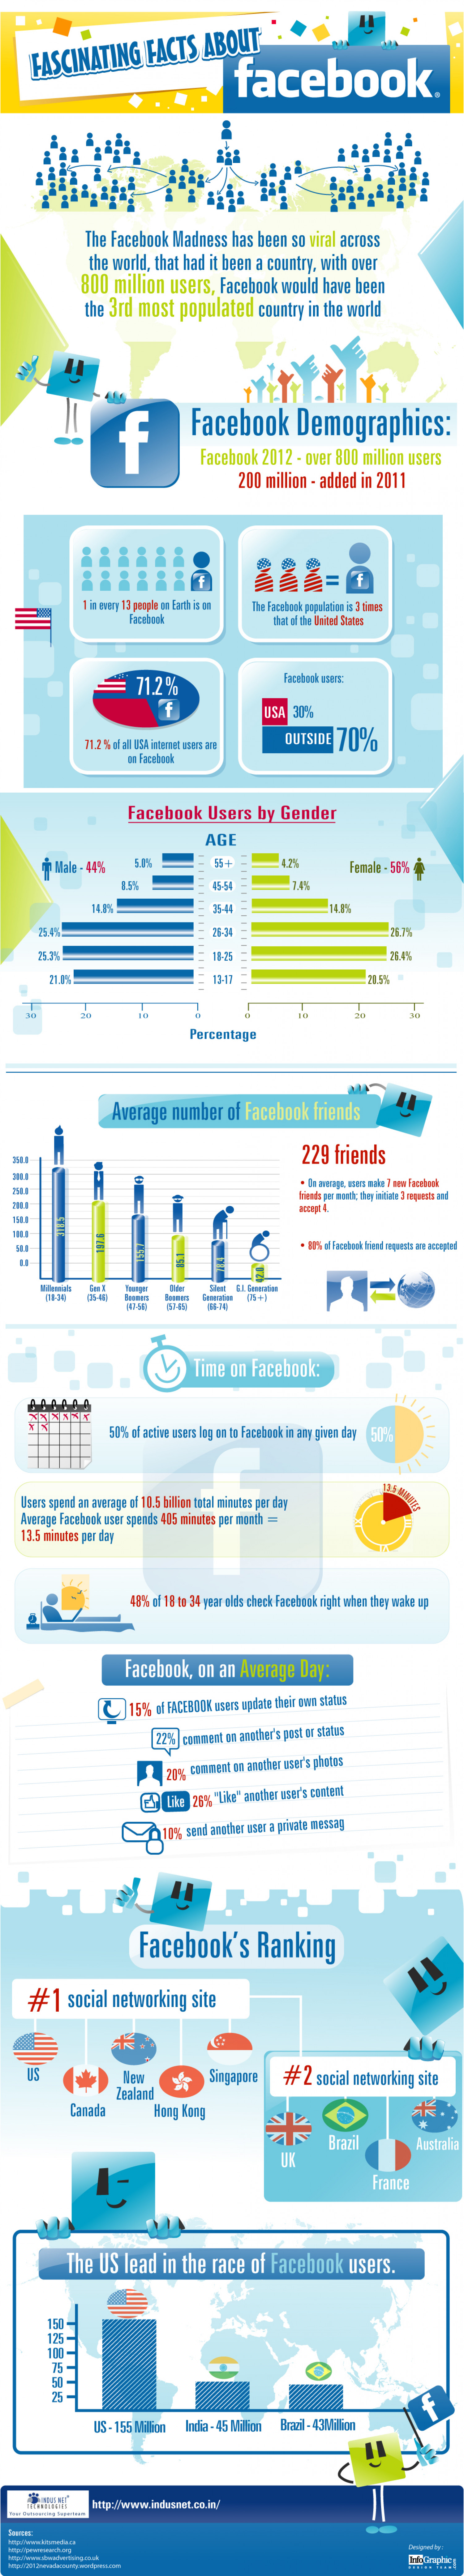 Interesting Facts about Facebook Infographic